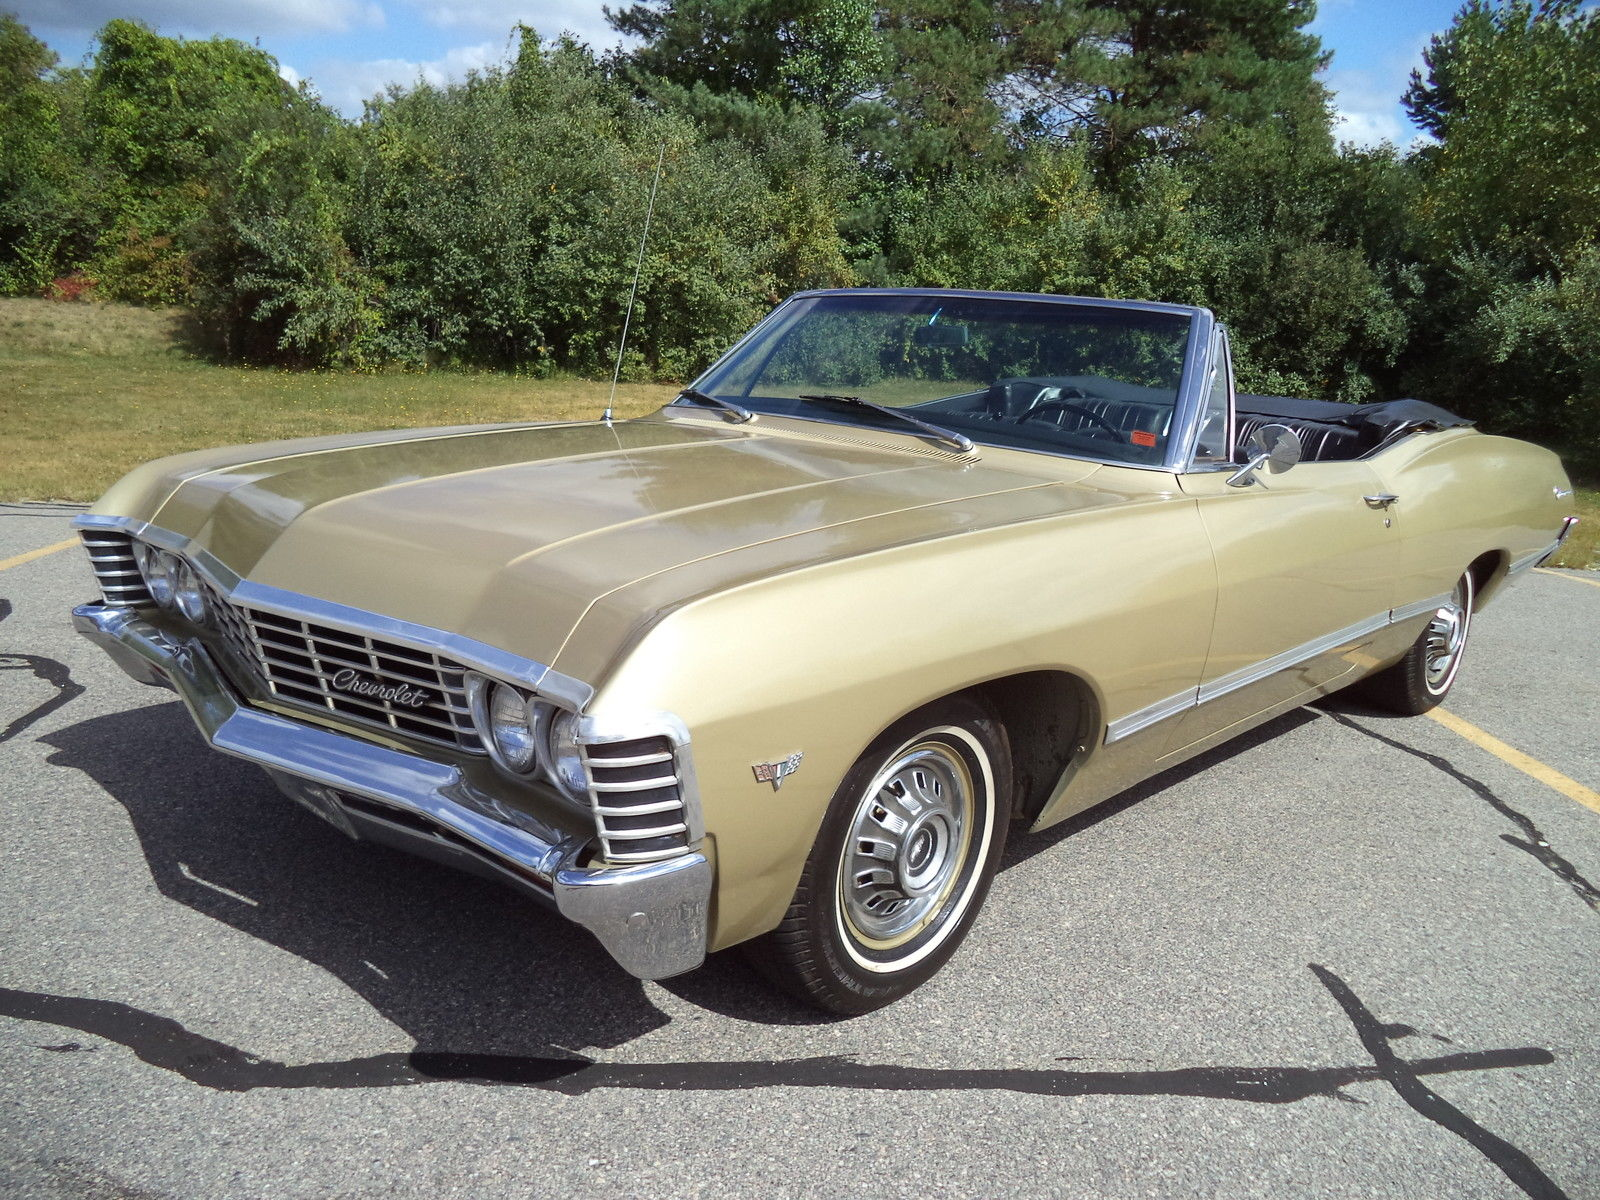 1967 chevrolet impala convert same owner for 25 years gold ext with black int classic. Black Bedroom Furniture Sets. Home Design Ideas